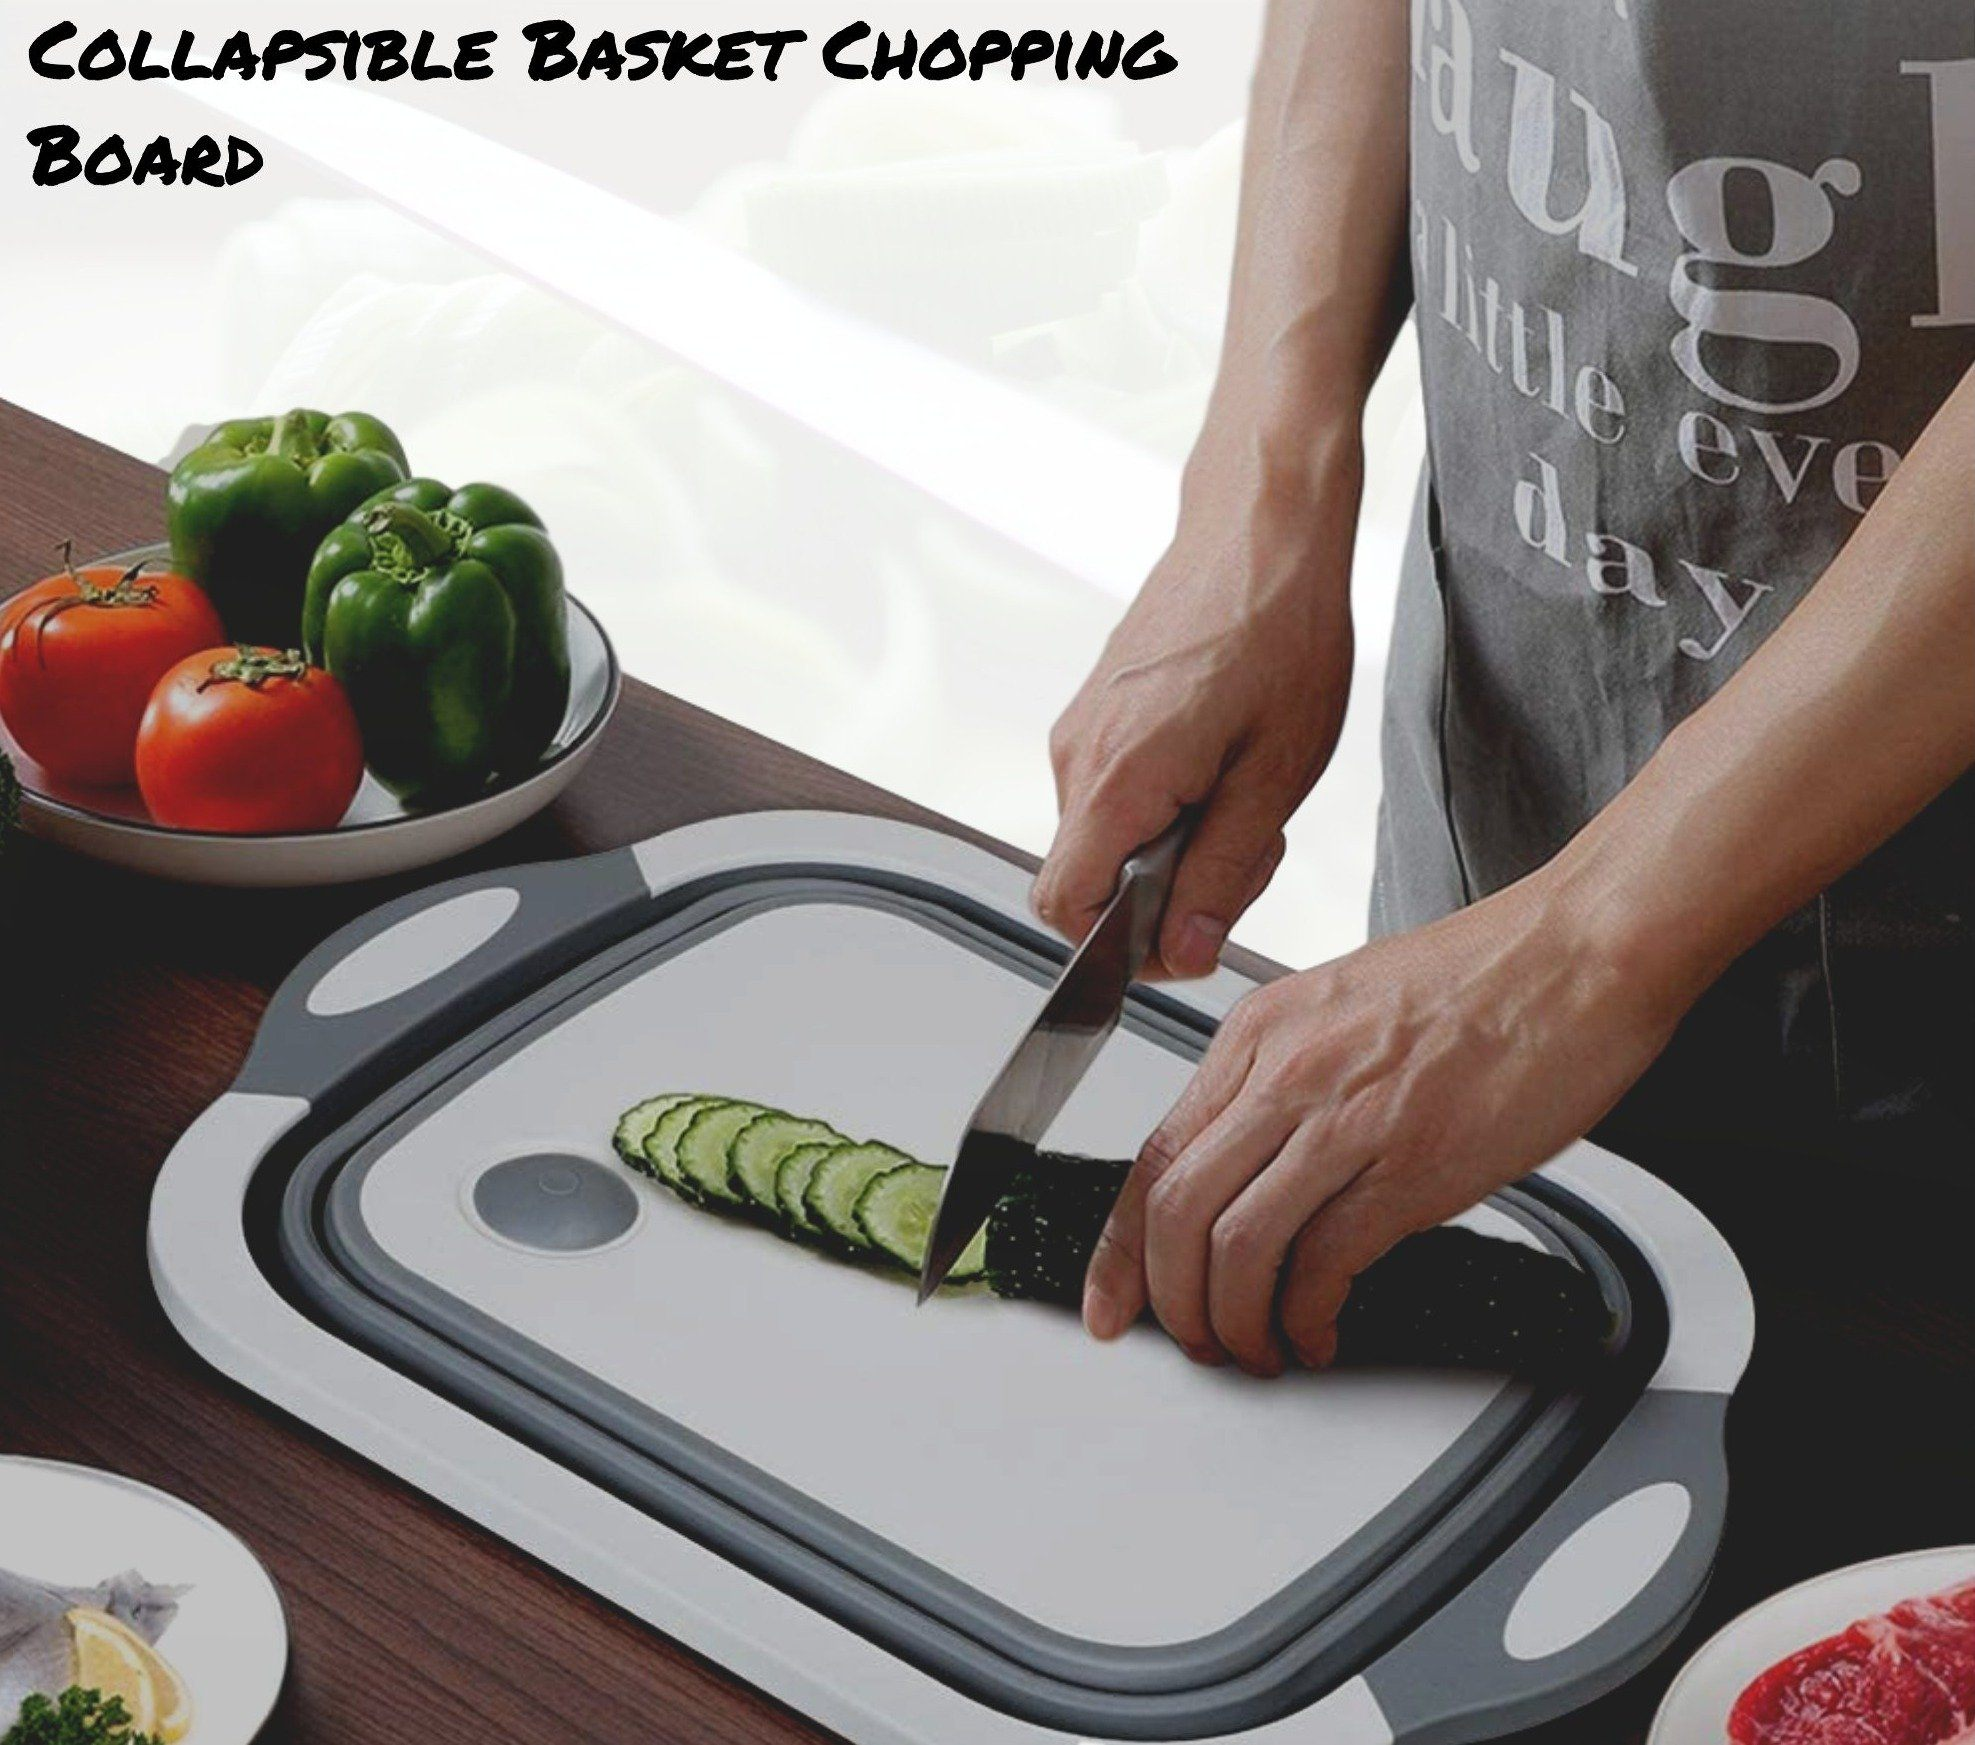 Collapsible Basket Chopping Board Another Ideal Shop